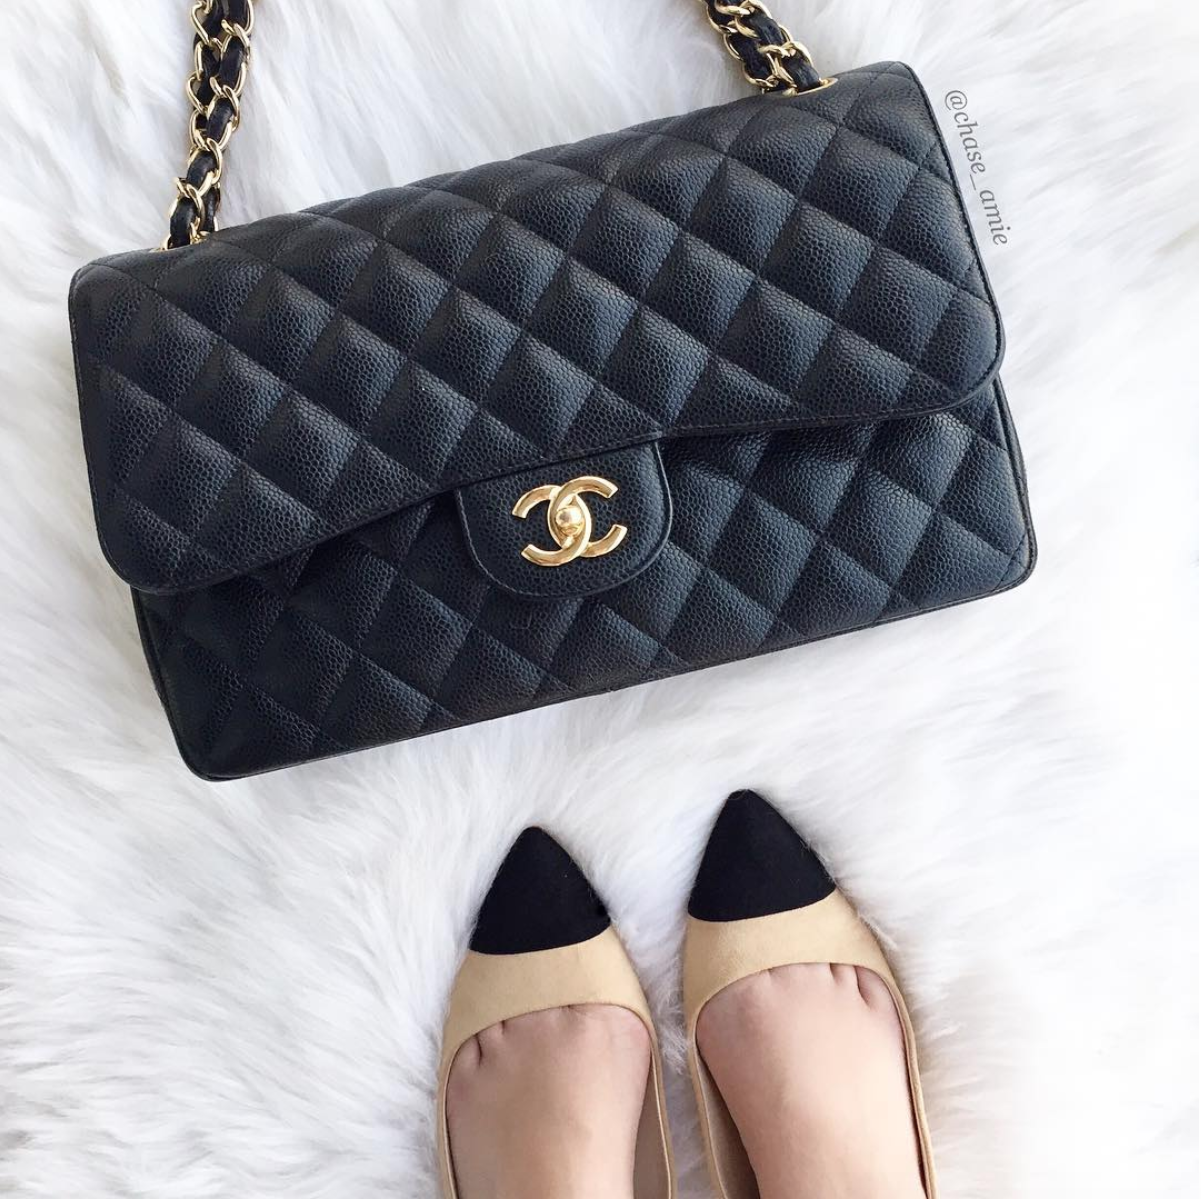 2630532006ea Chanel 101: Lambskin vs. Caviar | Which is Best? - Chase Amie